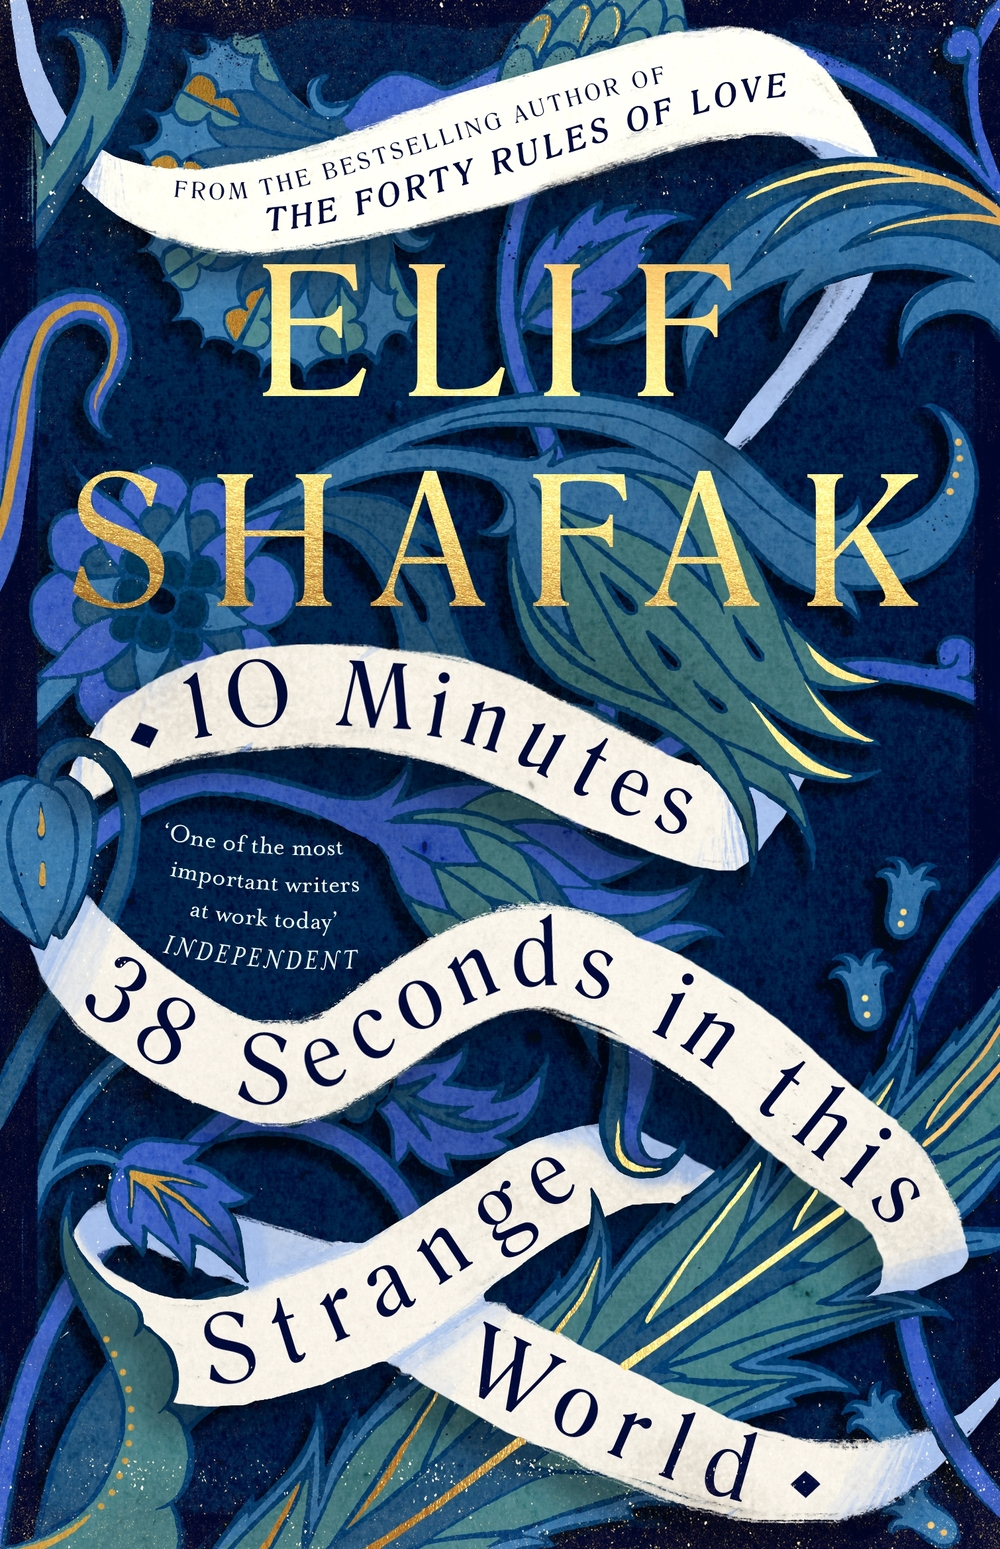 Large elif shafak 10 minutes 38 seconds in  this strange world